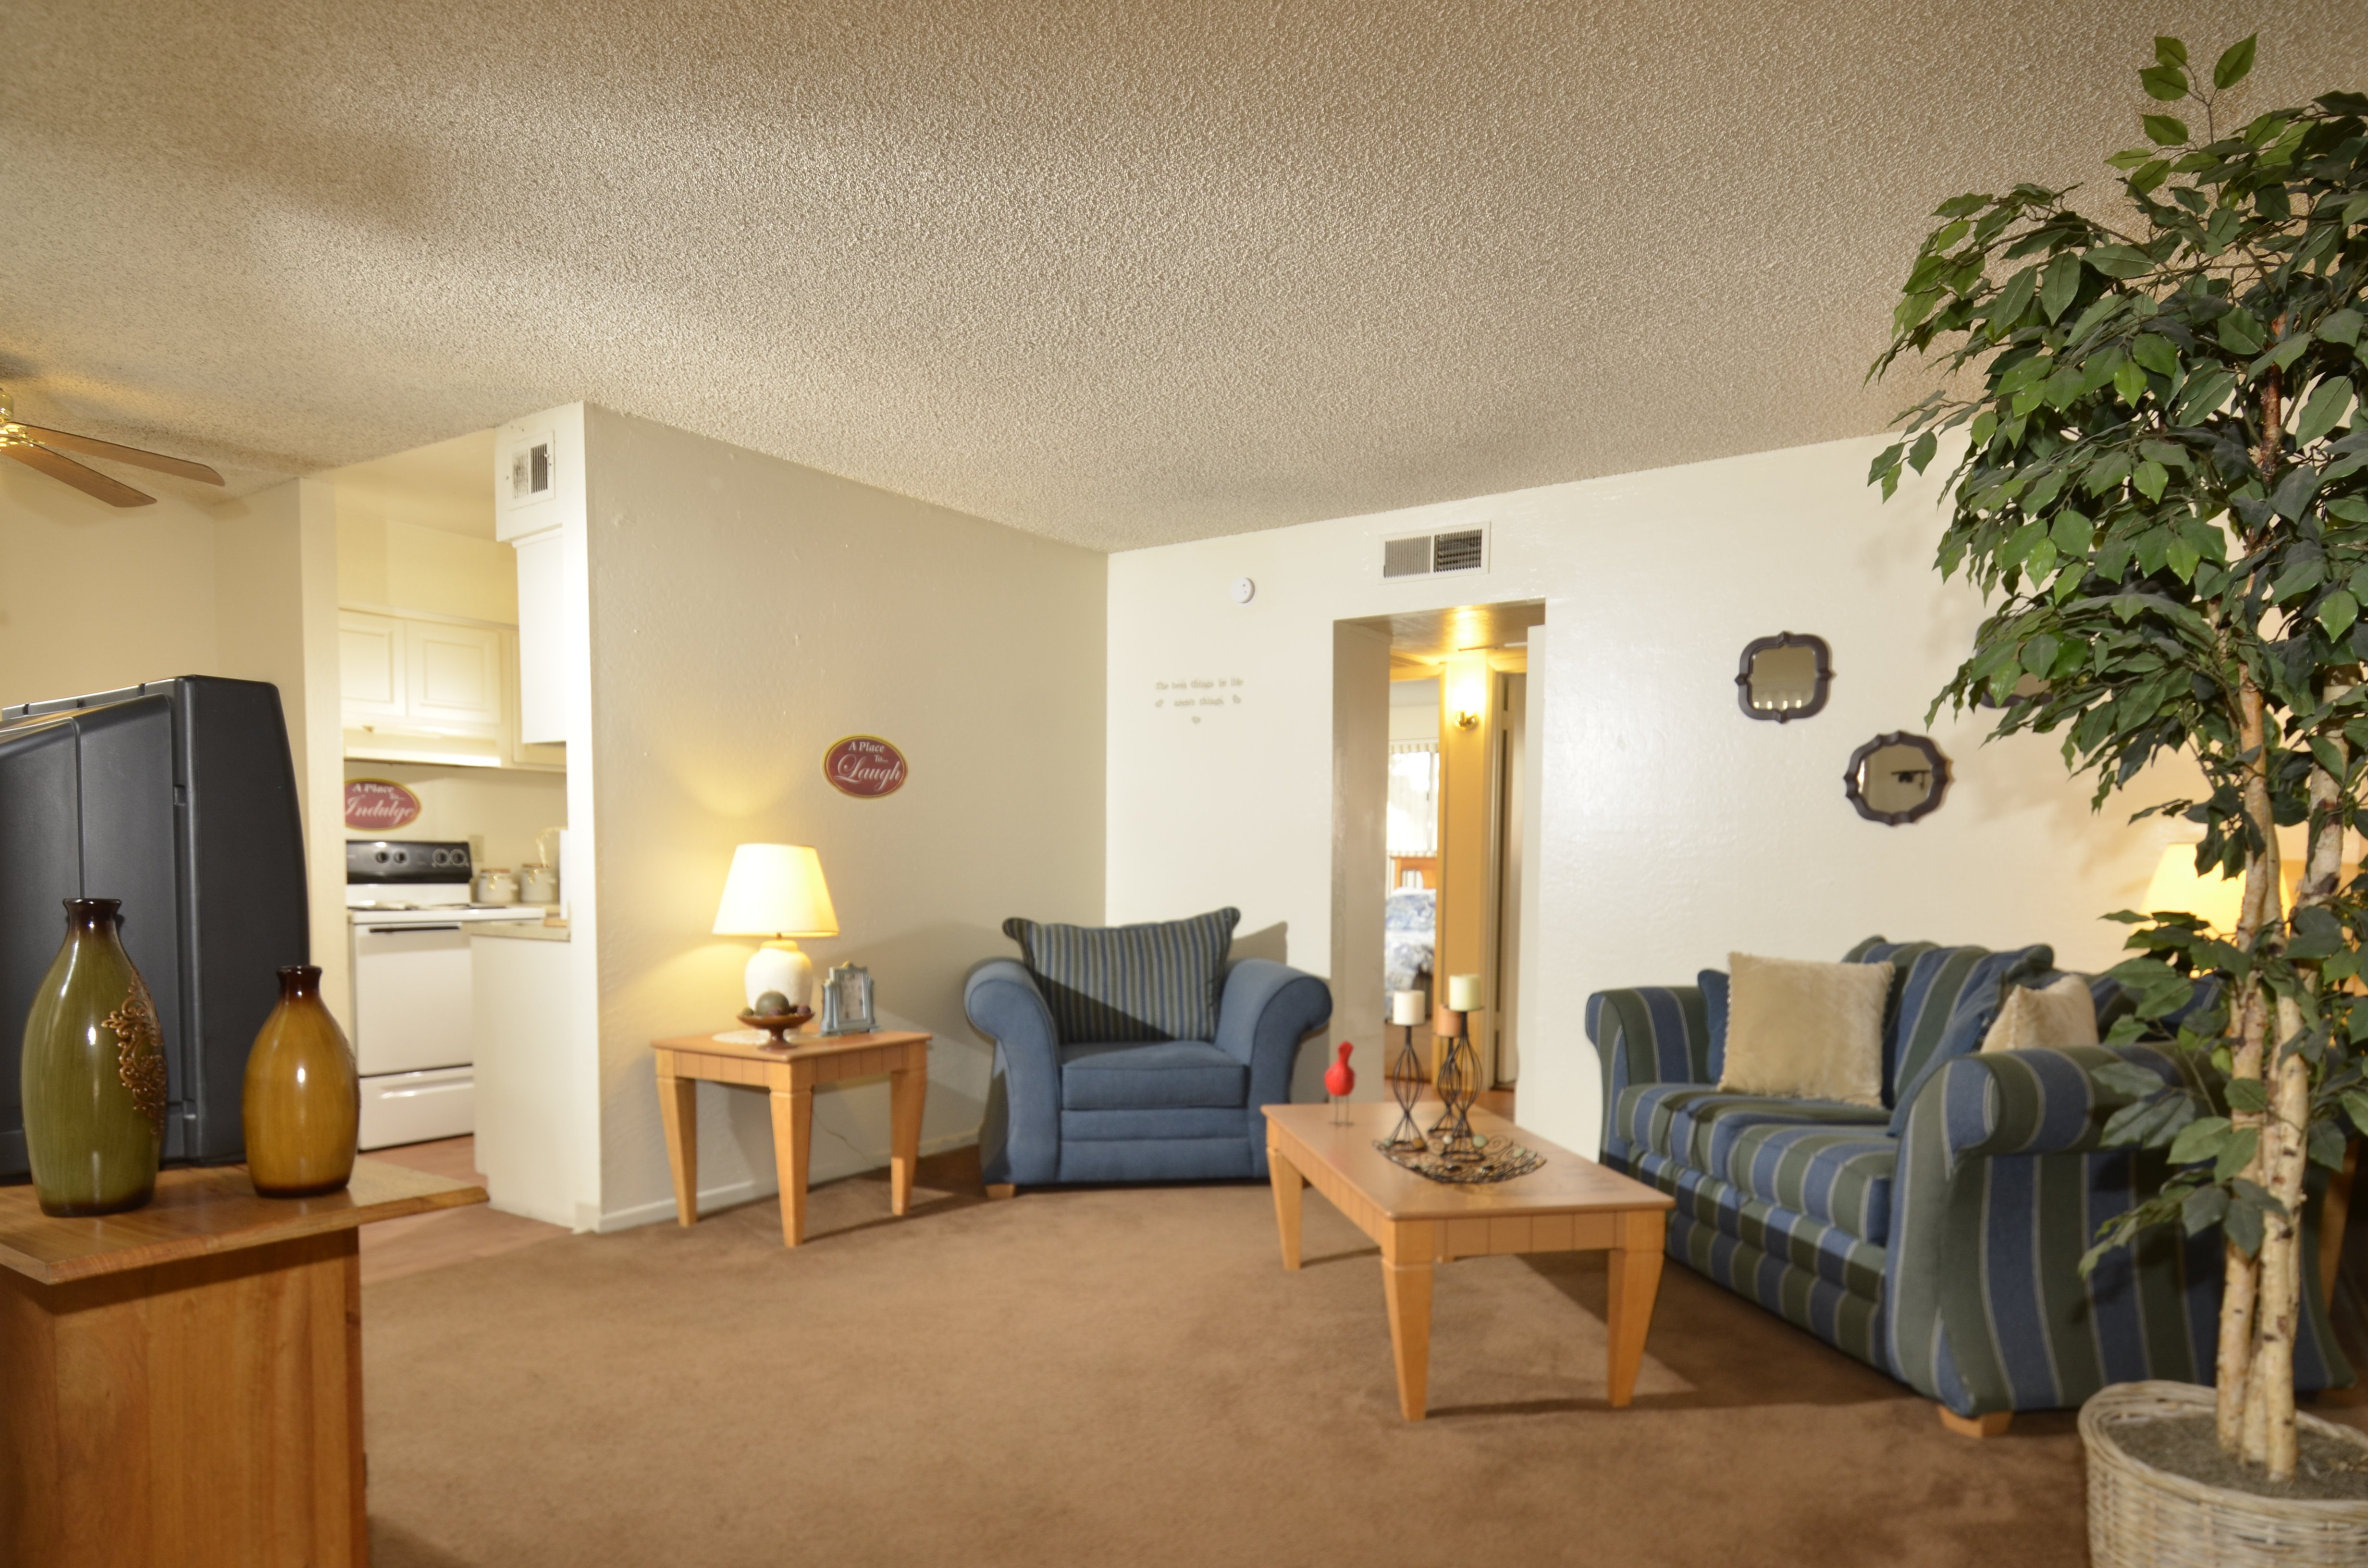 3 bedroom apartments in tempe utilities included apartment - 3 bedroom apartments with utilities included ...